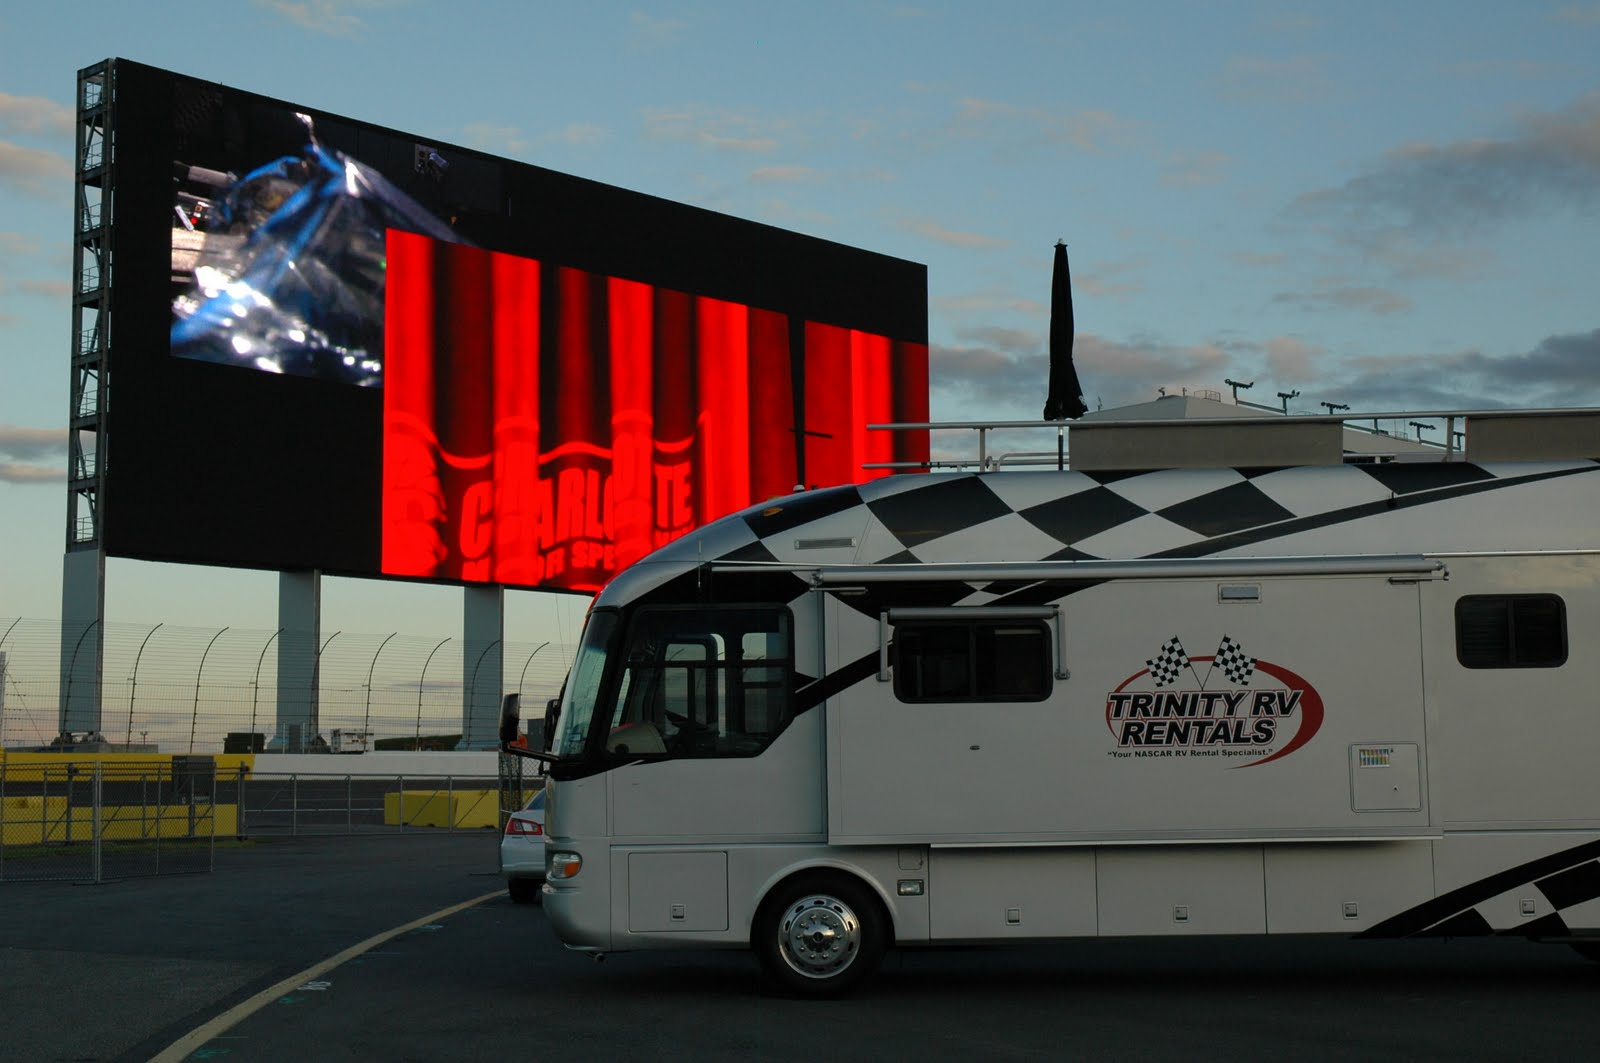 Trinity rv rentals updates specials for Charlotte motor speedway hotel packages